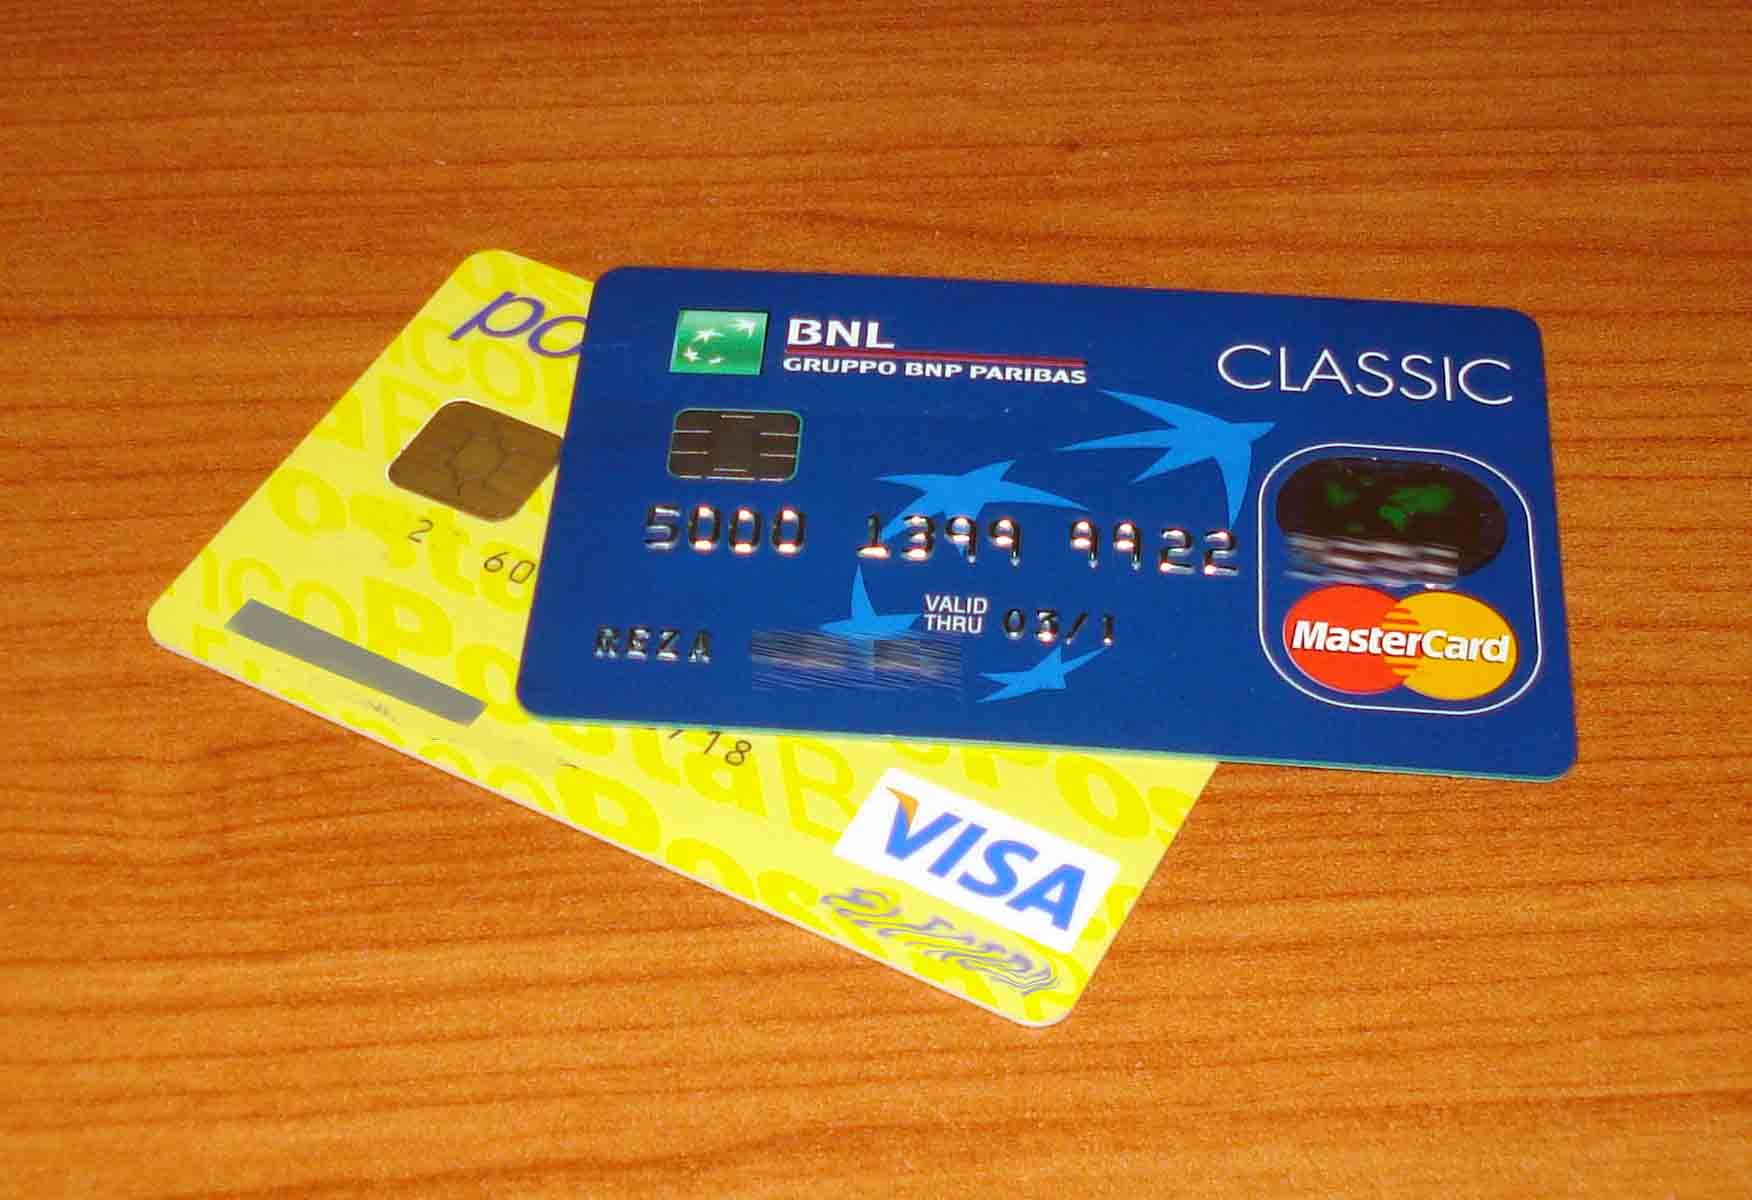 Image Result For Free Credit Cards